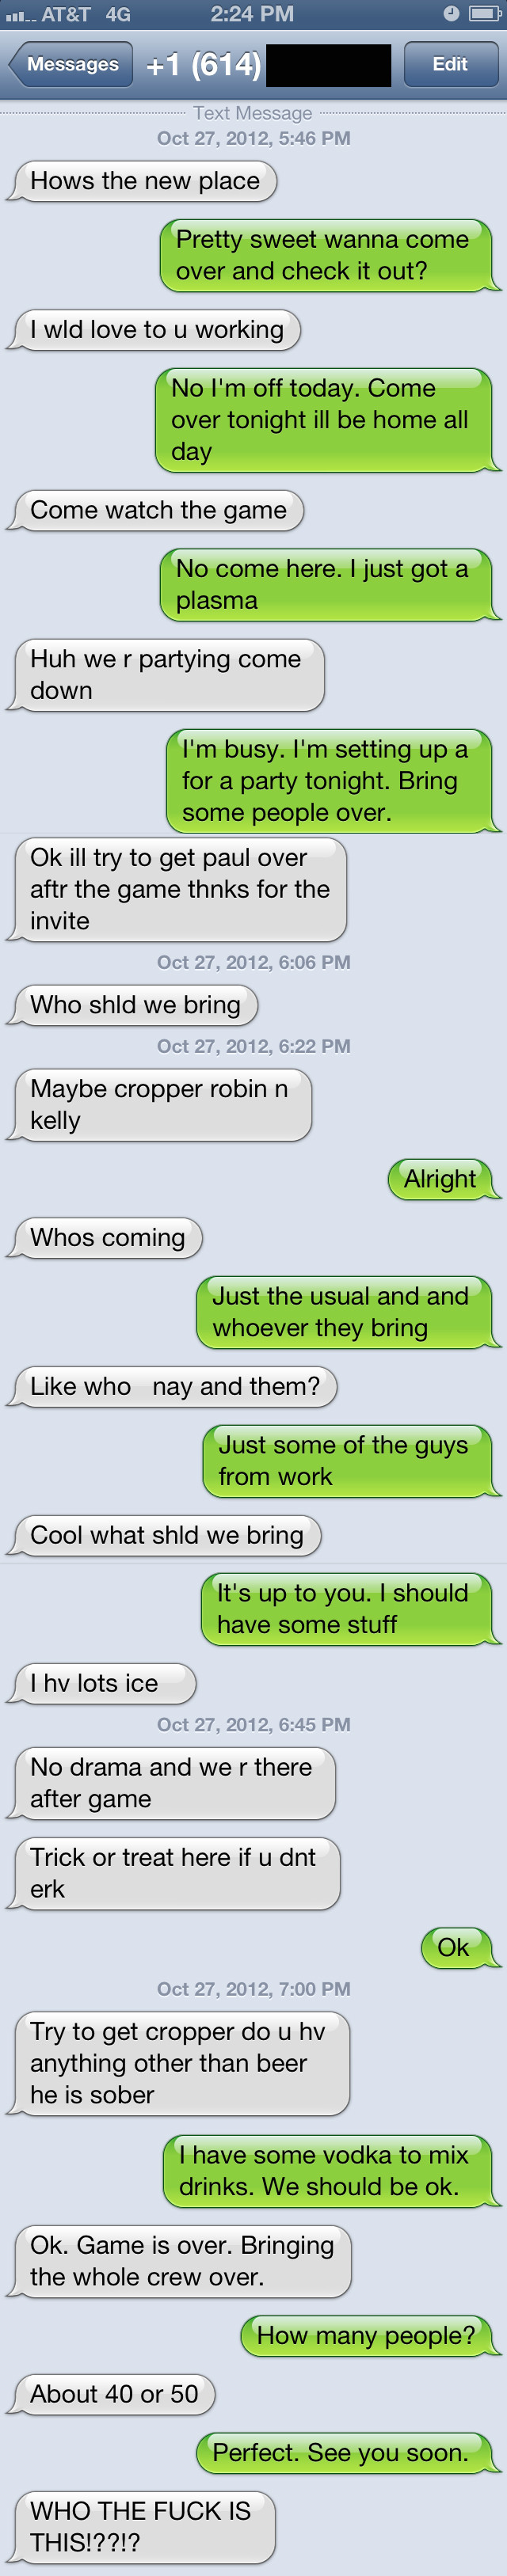 iPhone text message conversation trolling